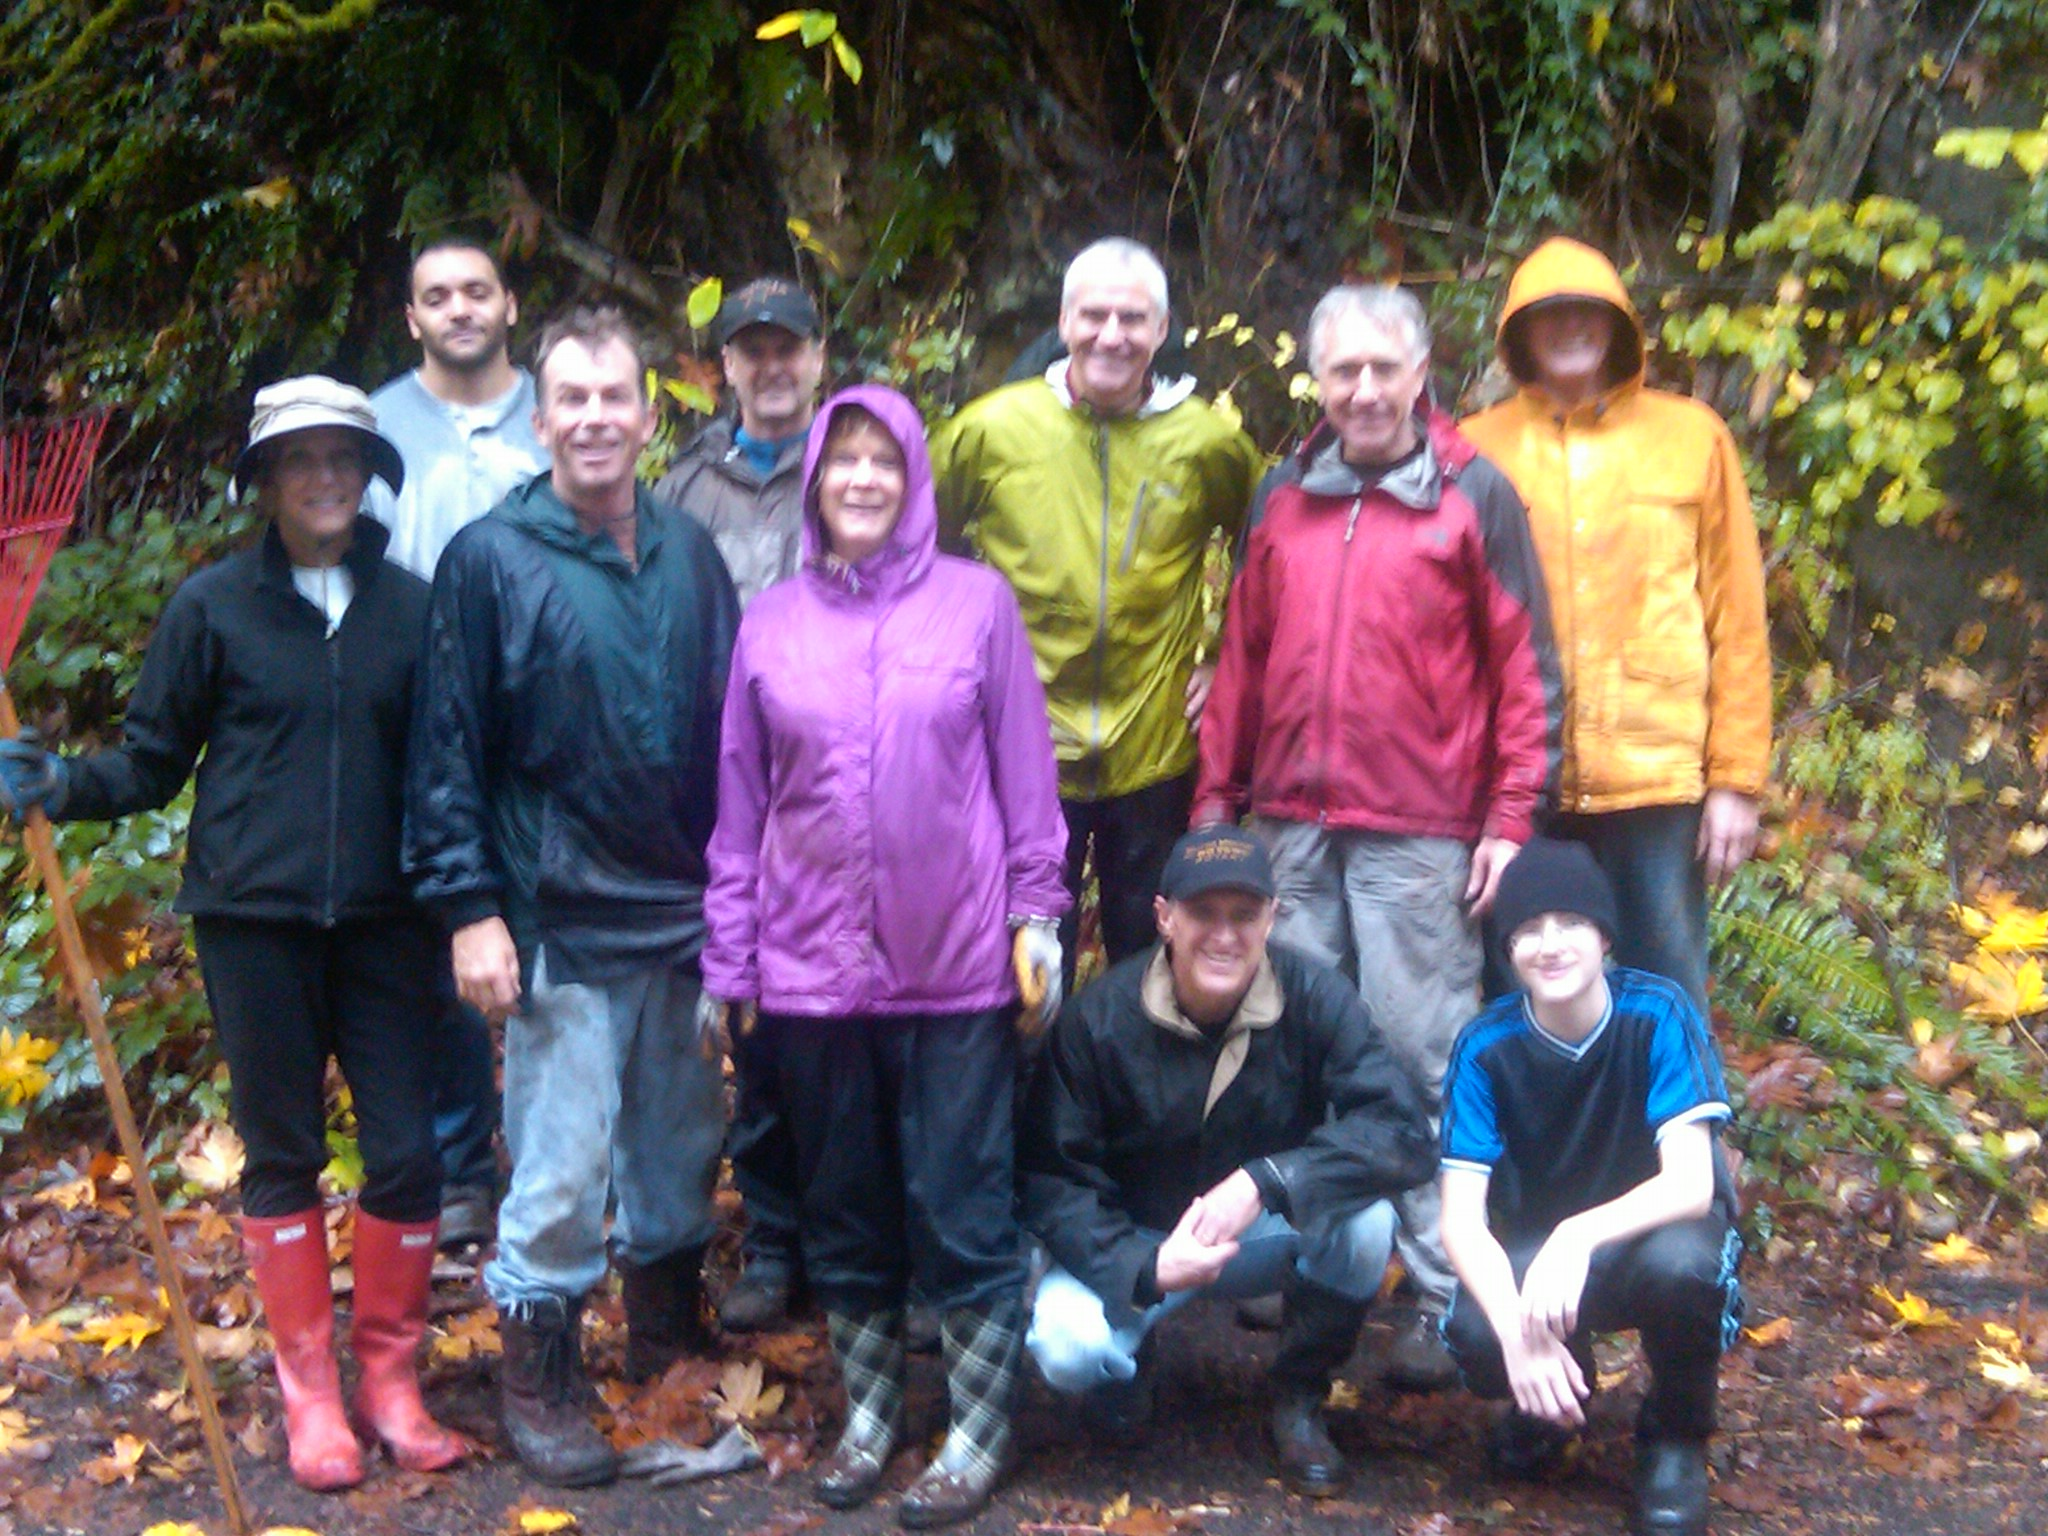 The Preserve Planet Earth Committee after their first work party in the Mercer Slough - 27th October 2012